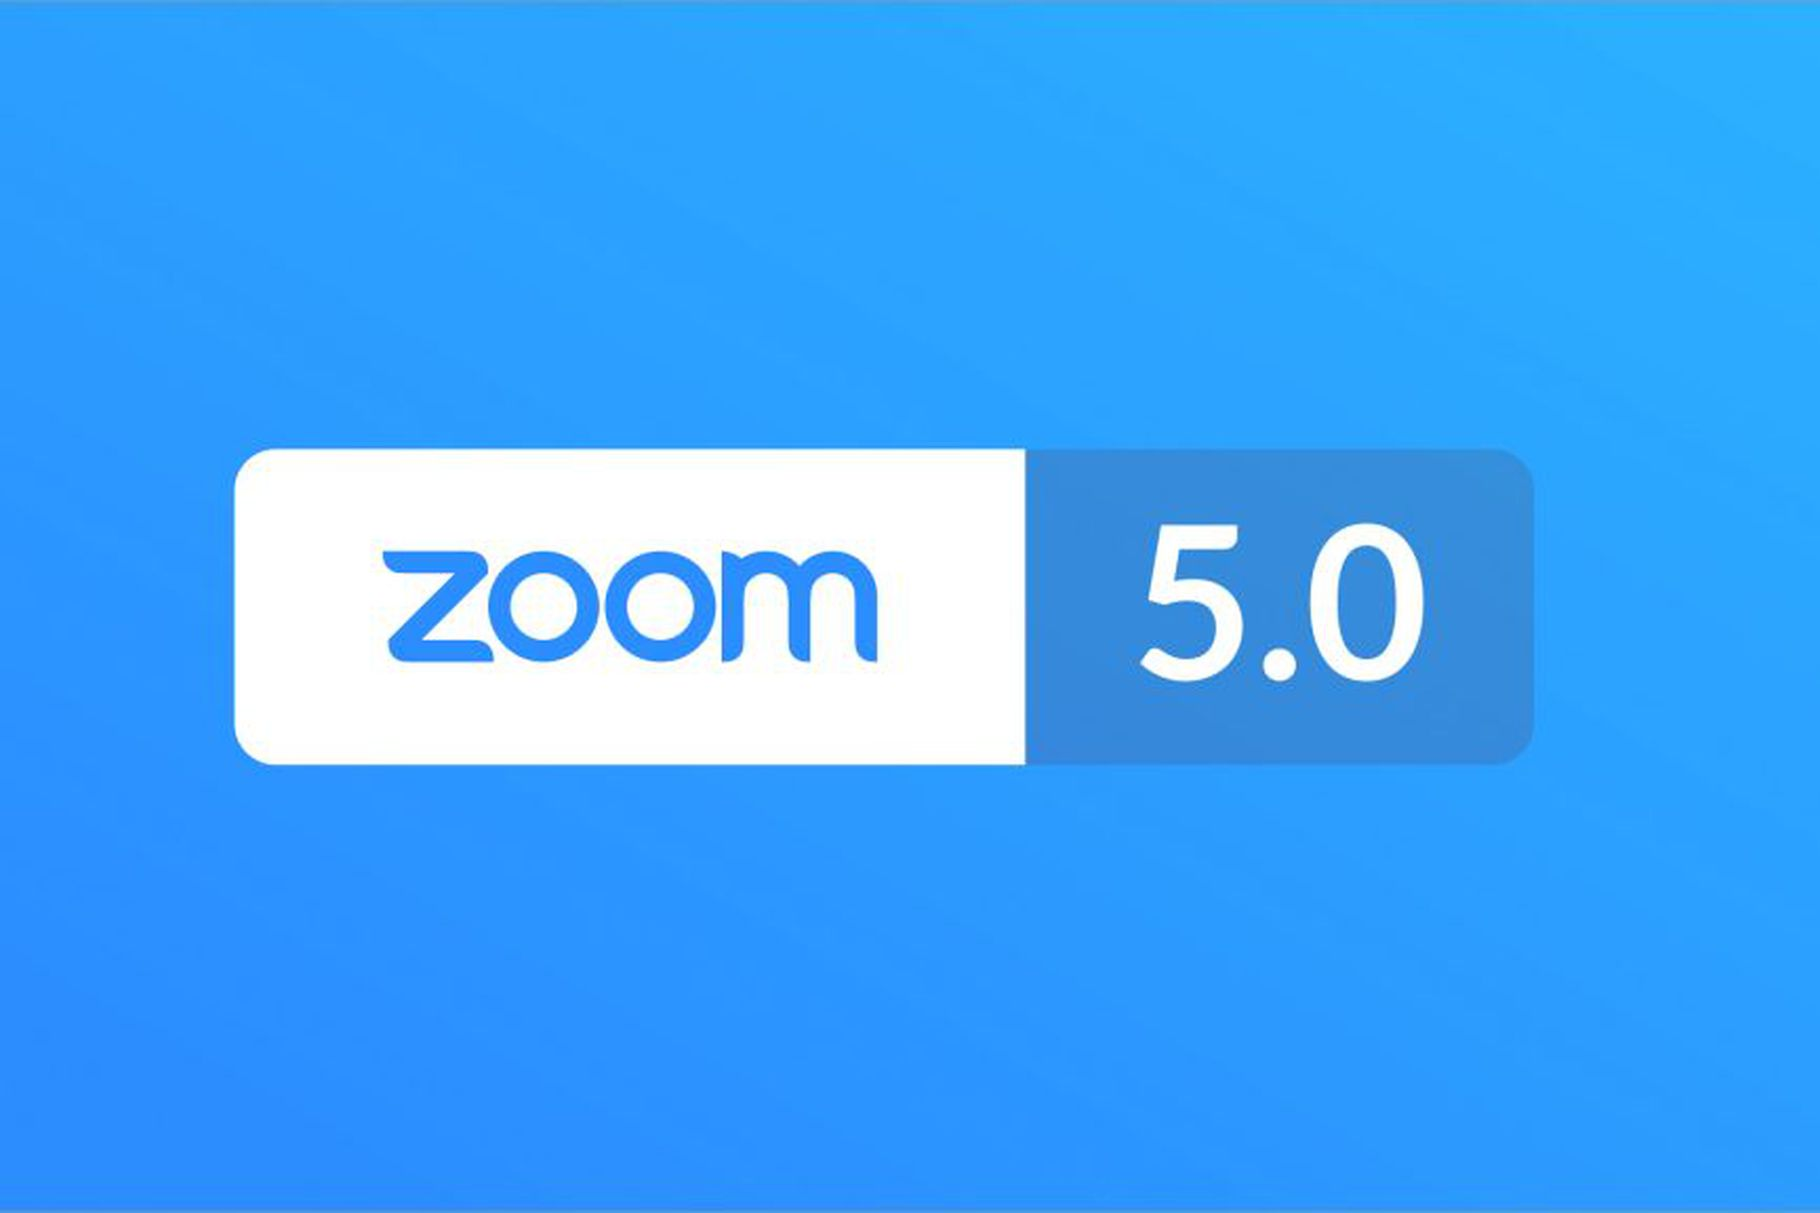 Zoom Introduces Security Updates After Vulnerability Allegations